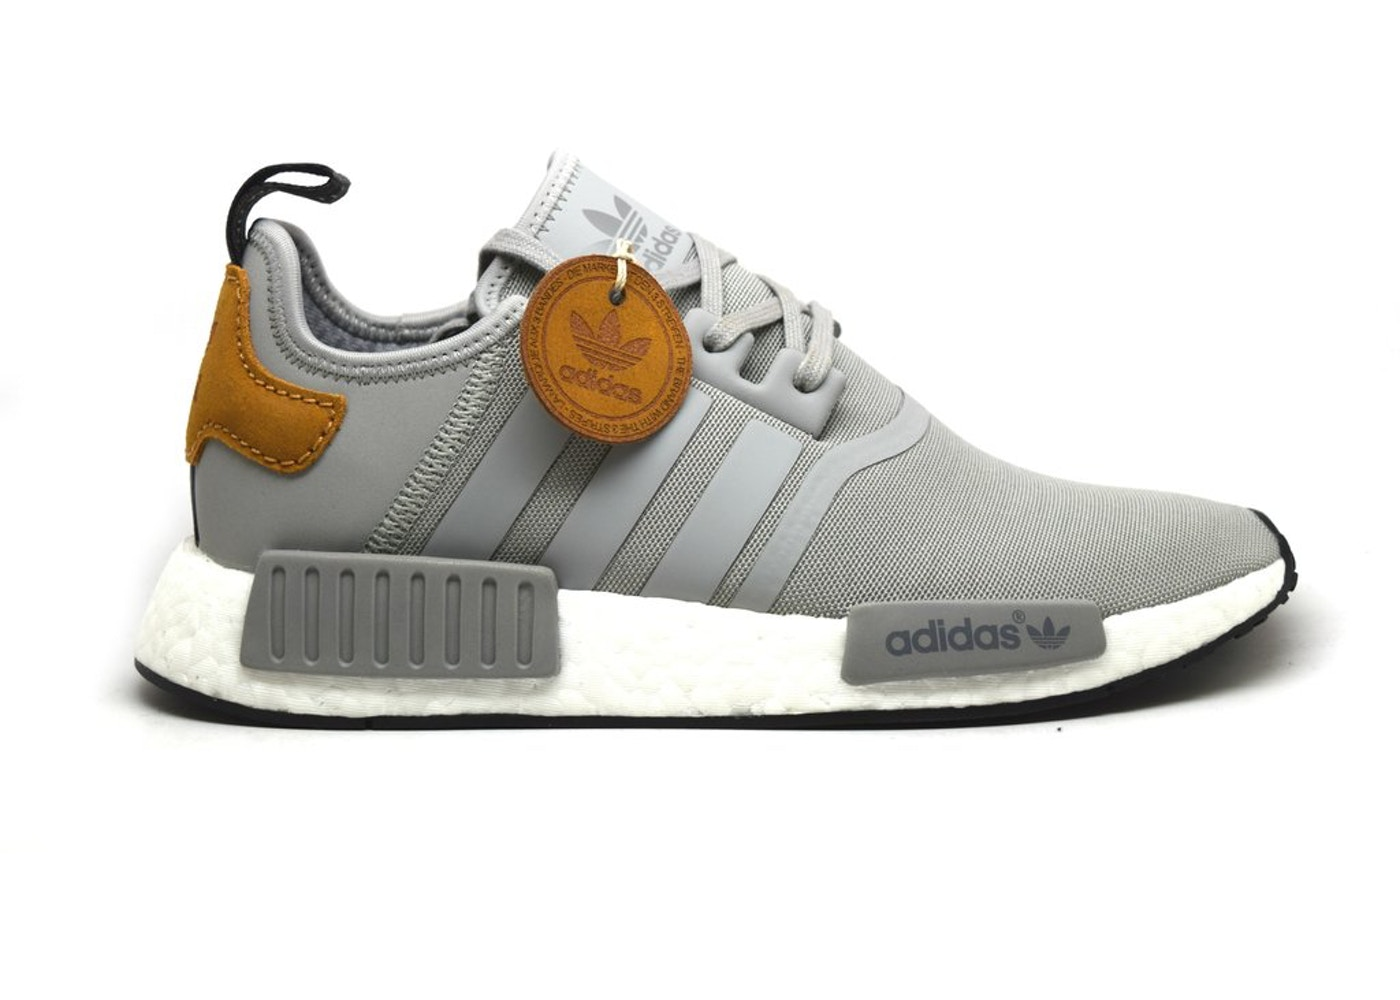 new arrival 2c386 66f17 adidas NMD R1 Master Craft Pack Grey - BY2492